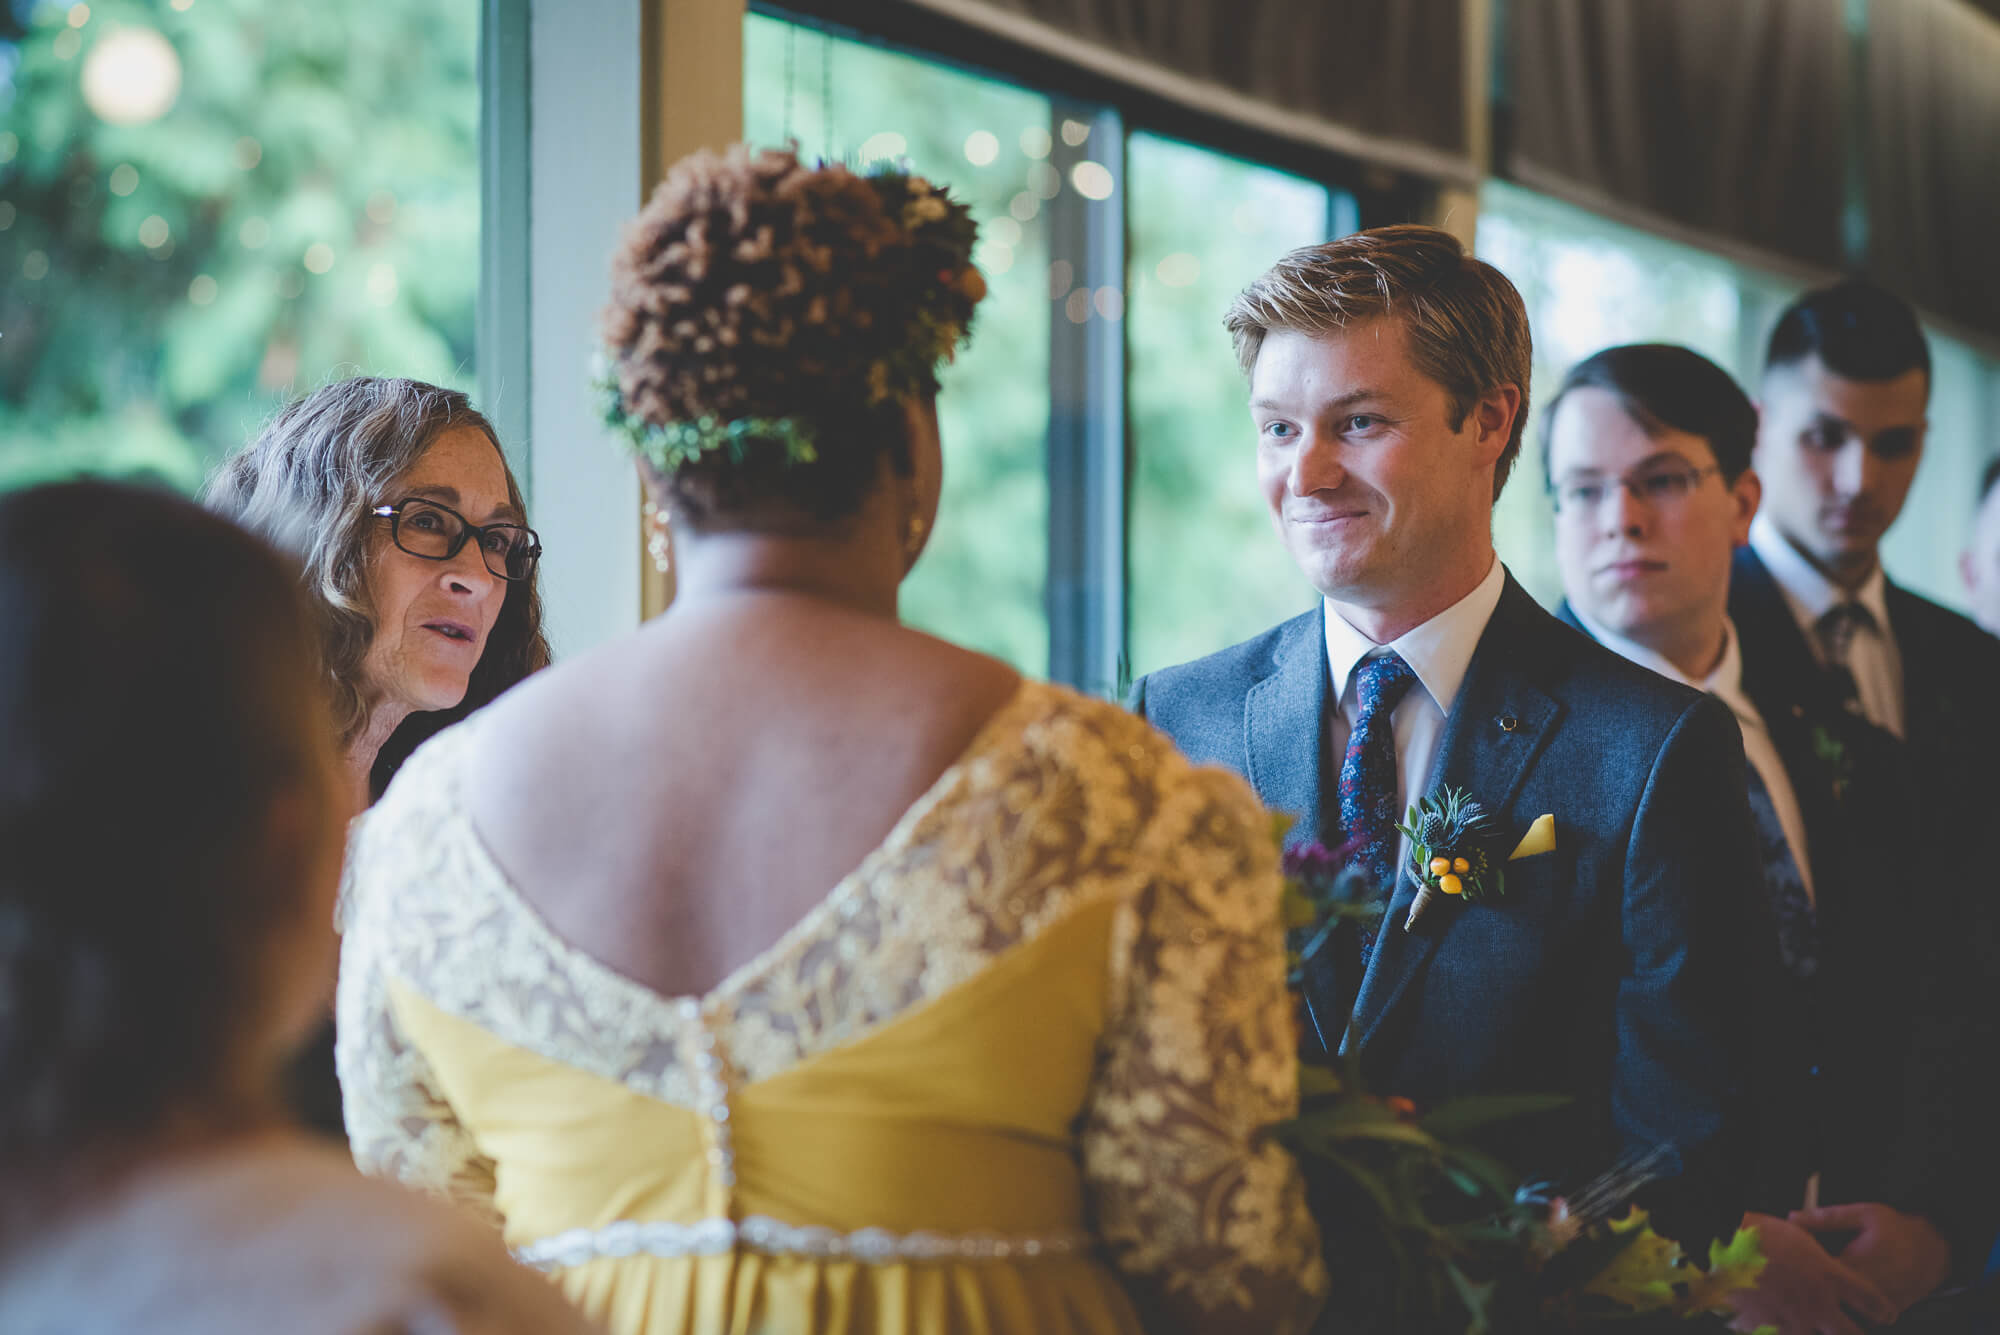 groom smiling at bride in yellow wedding dress during wedding vows